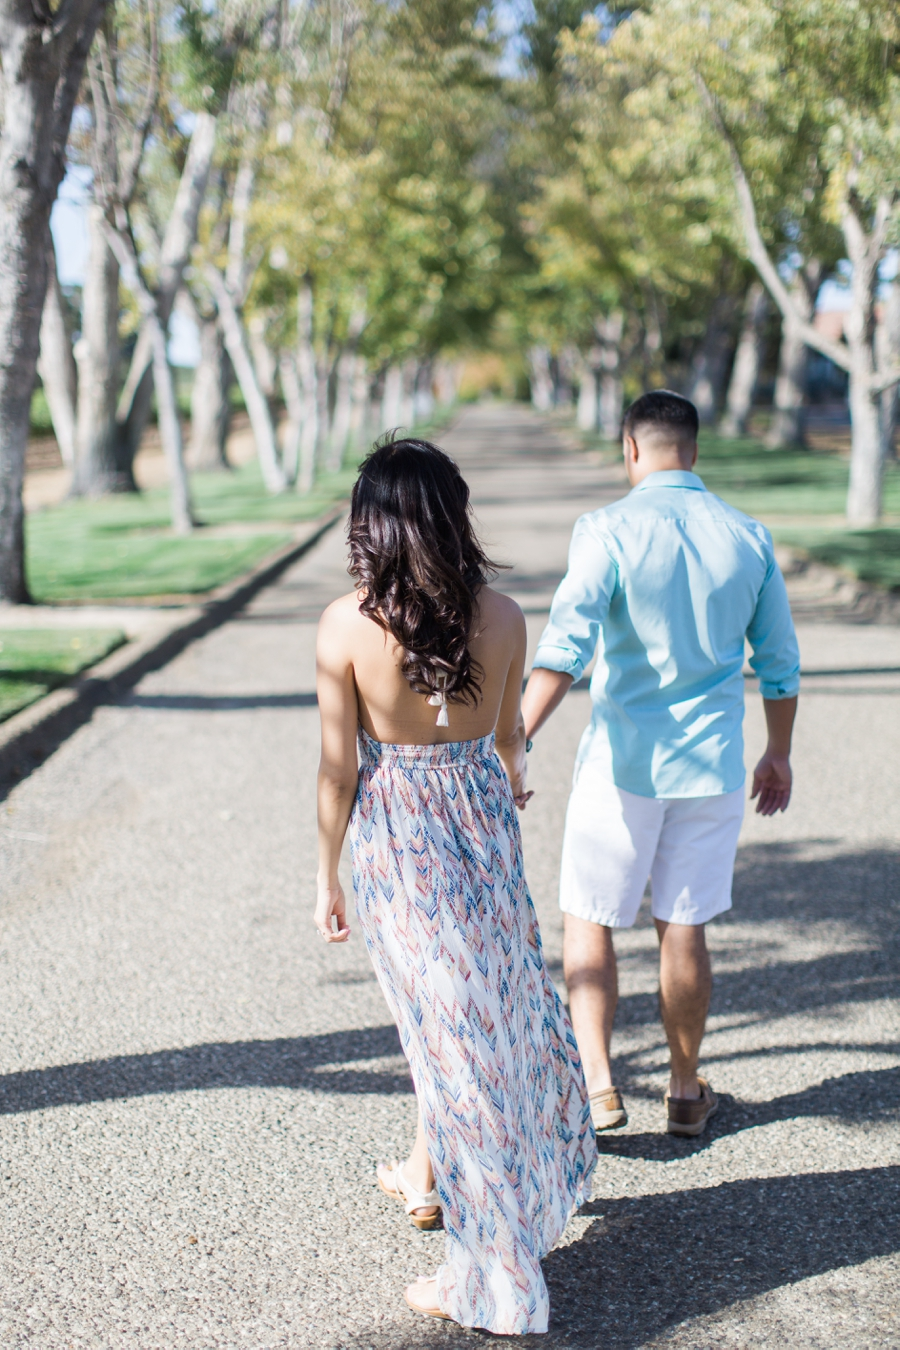 Taylor_Kinzie_Photography_Santa_Barbara_Engagement_Photography_0103